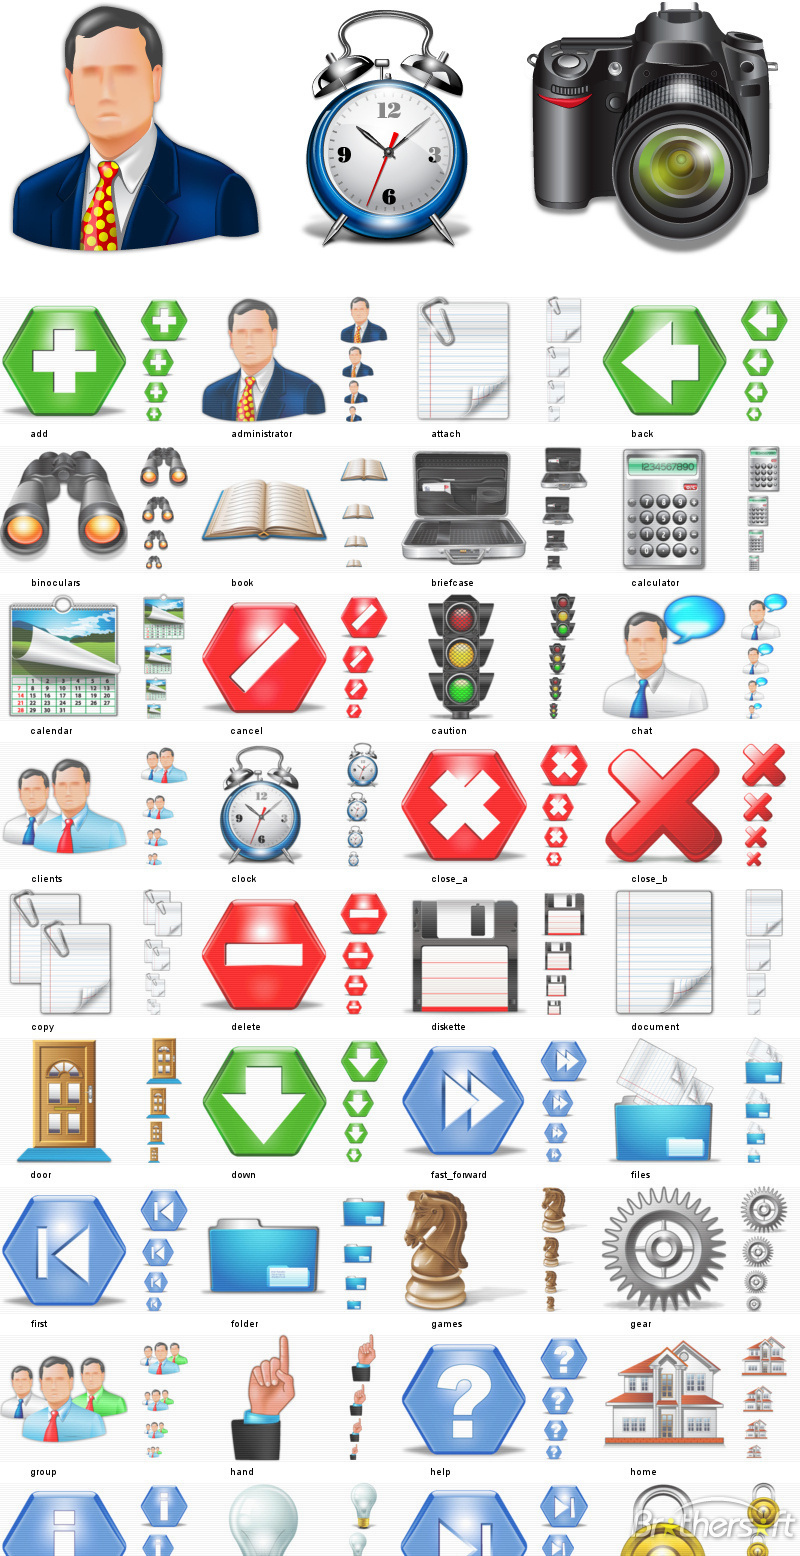 11 Free Professional Icons Images